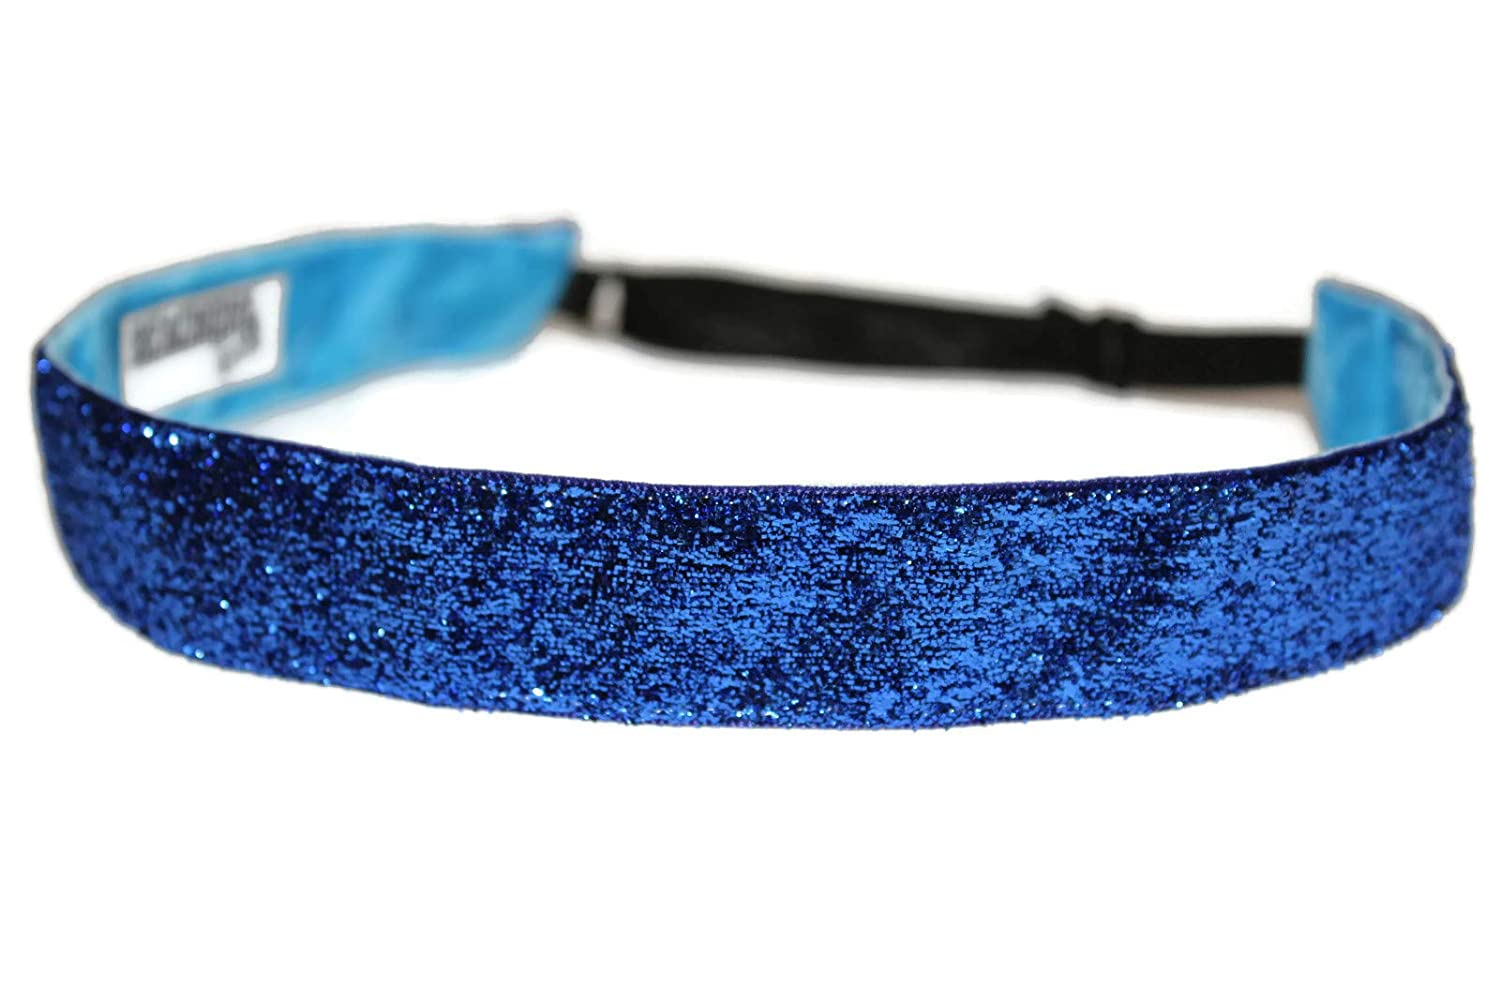 BEACHGIRL Bands Royal Blue Glitter Non Slip Adjustable Sports Headband For Women And Girls